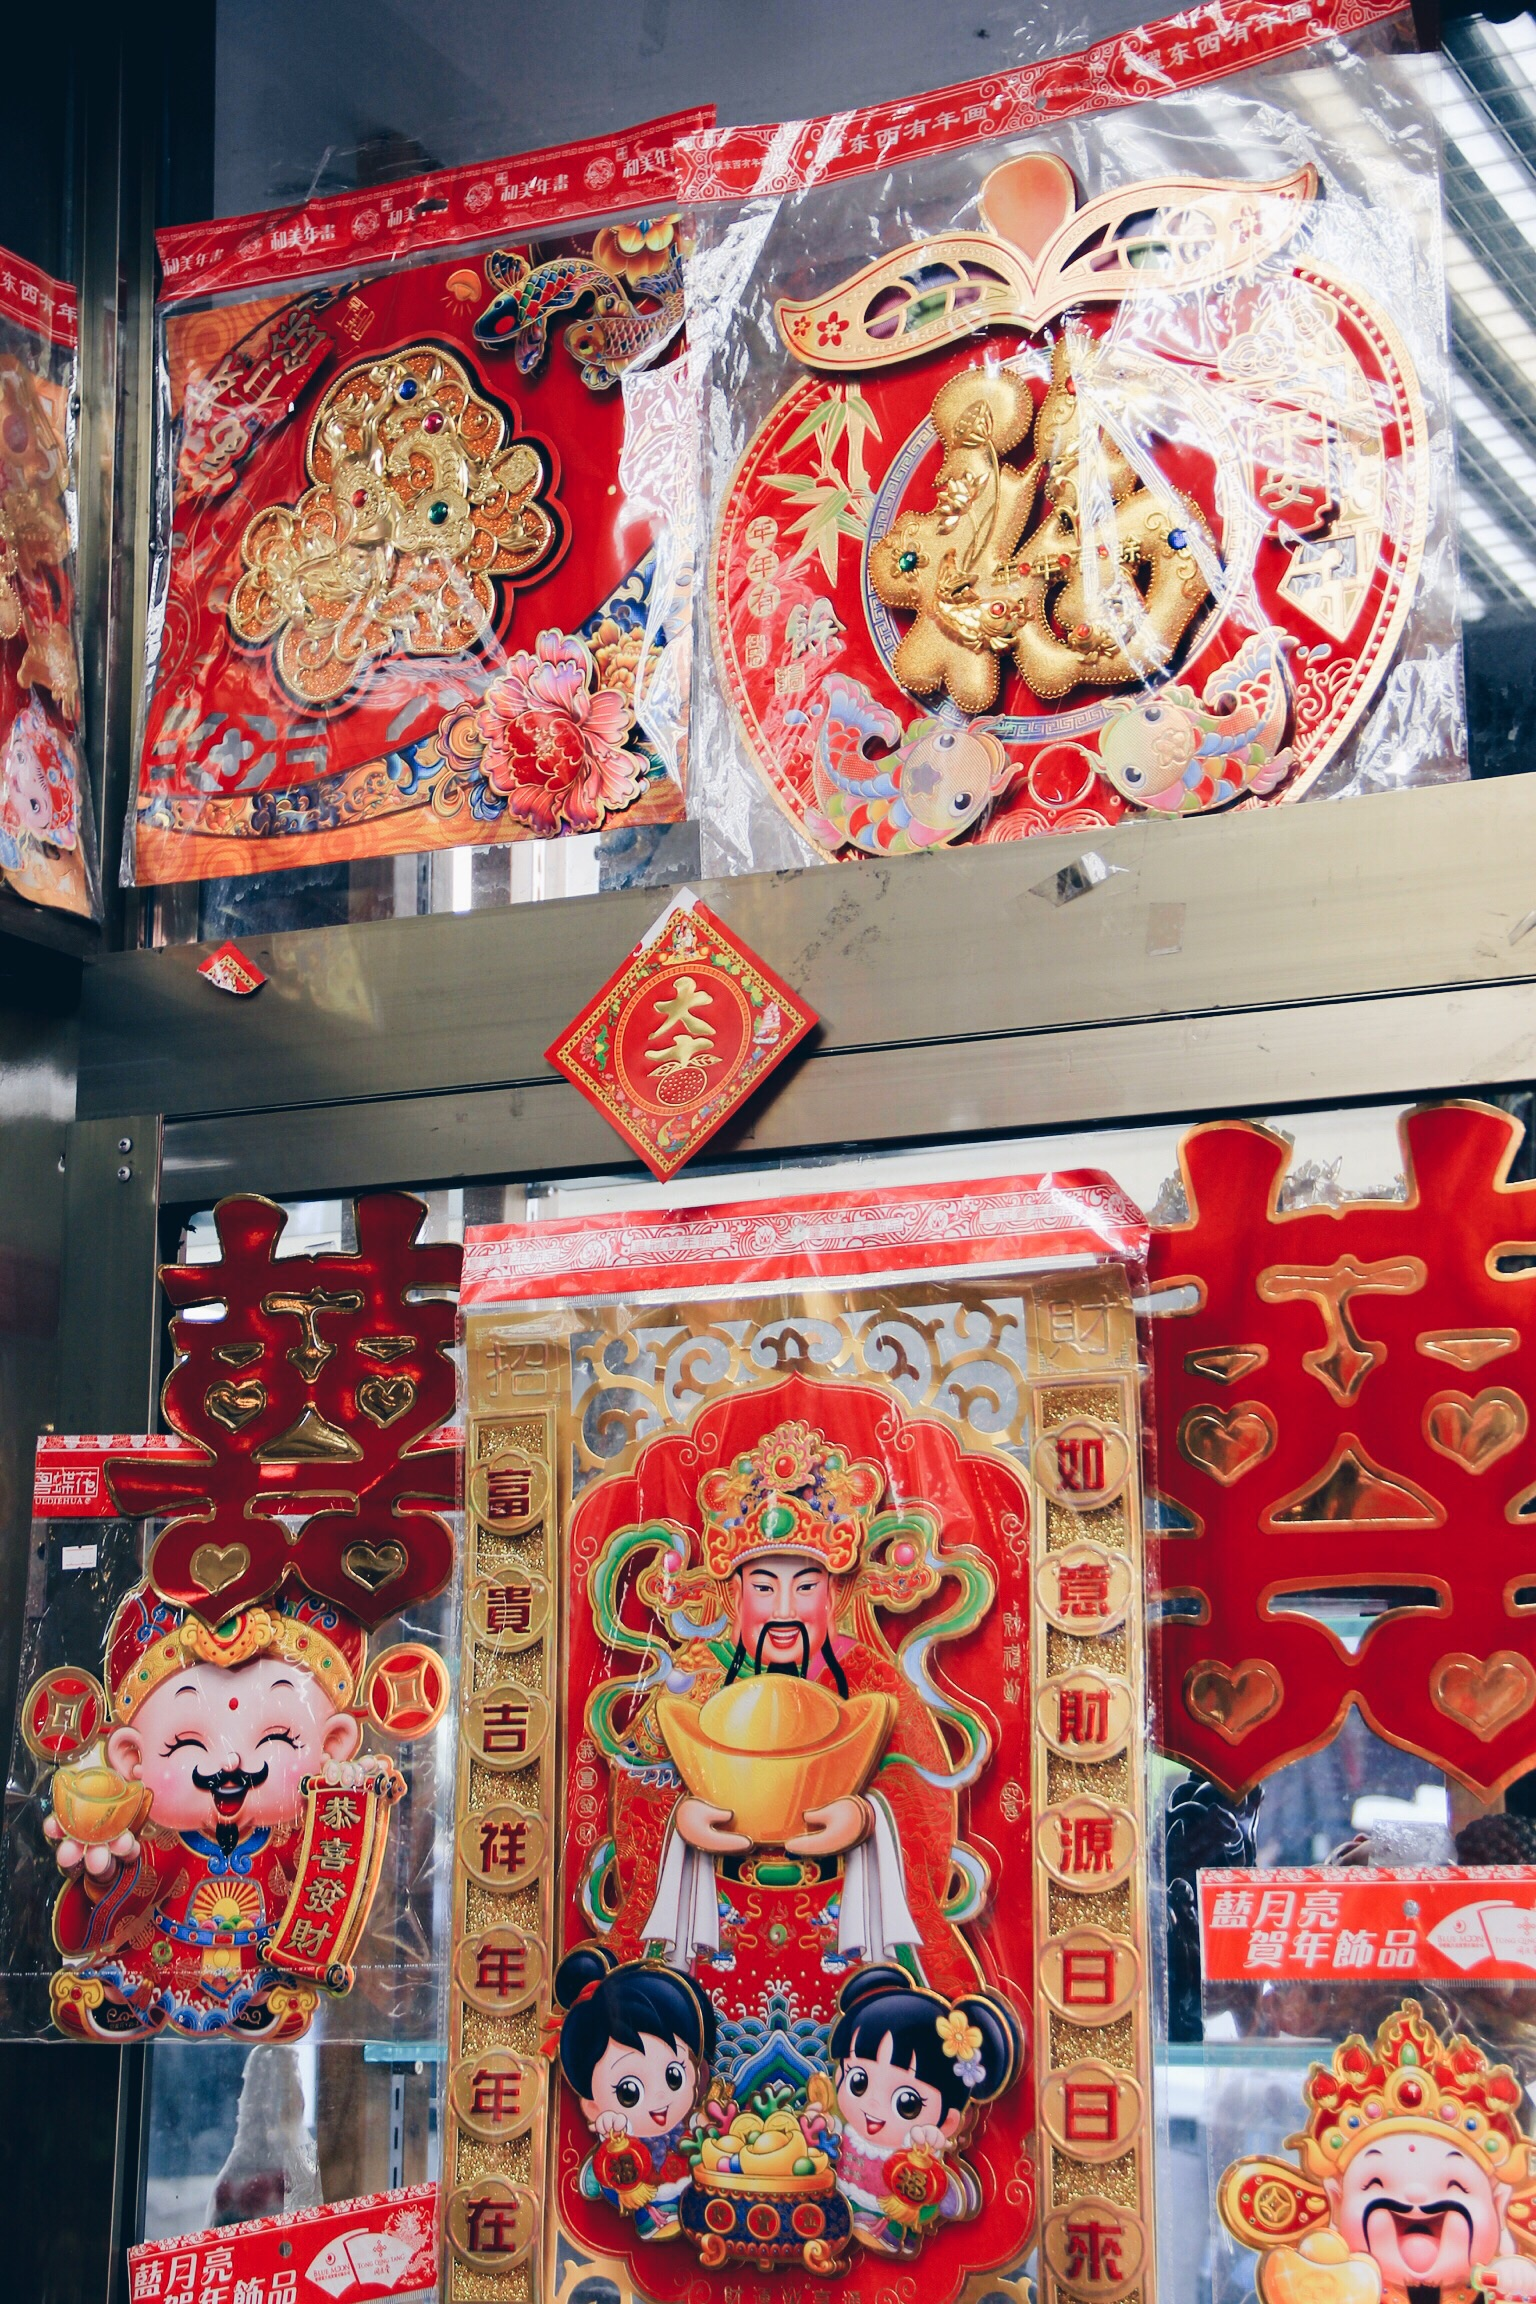 details from Chinatown in San Francisco